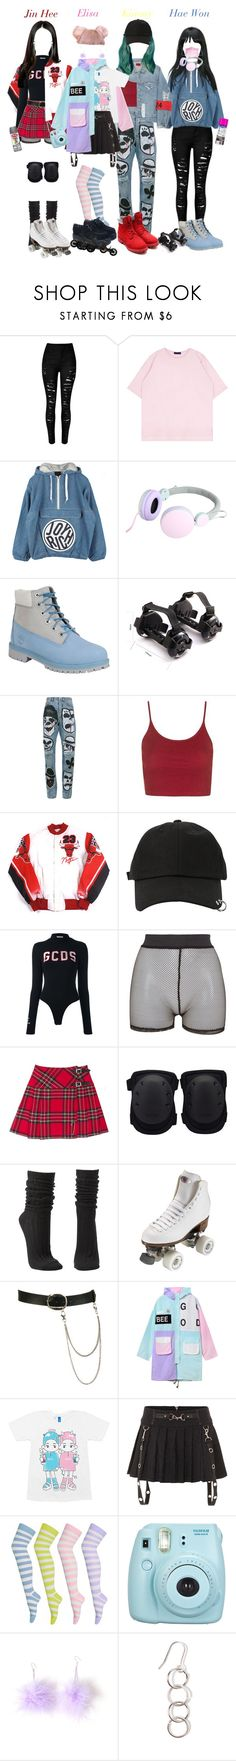 """""""G.U.C. - YOUTH"""" by candyhyperkidd ❤ liked on Polyvore featuring Joyrich, Timberland, Heelys, Faith Connexion, Topshop, StyleNanda, GCDS, Bitching & Junkfood, Charlotte Russe and Riedell"""